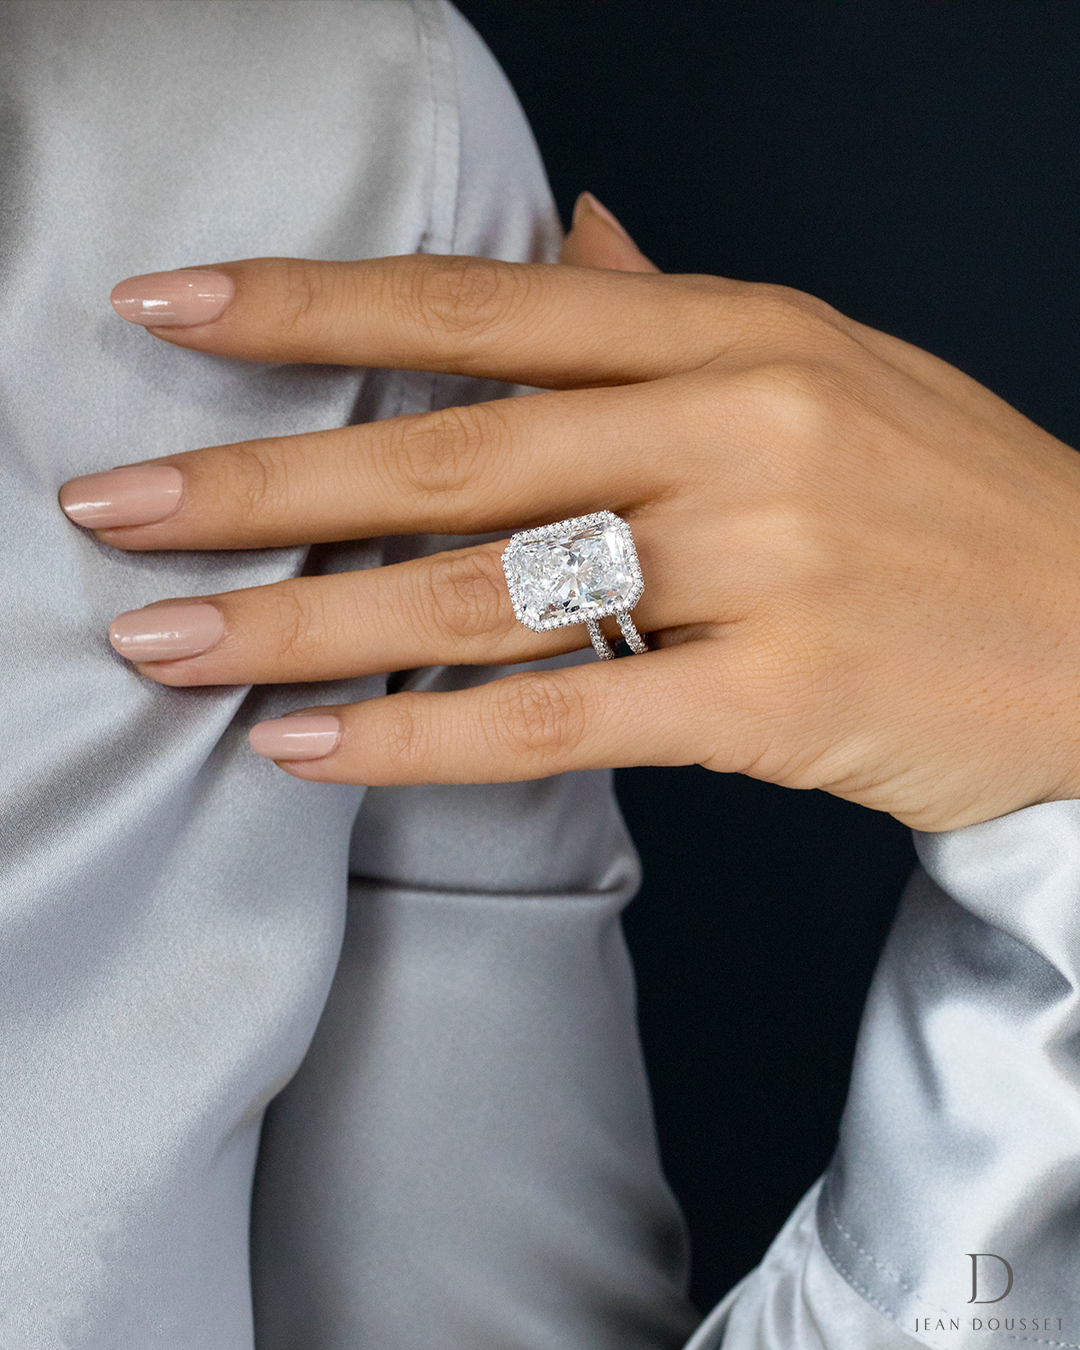 Perfection In Its Most Perfect Form In 2020 Engagement Ring White Gold Unique Engagement Rings Dream Engagement Rings